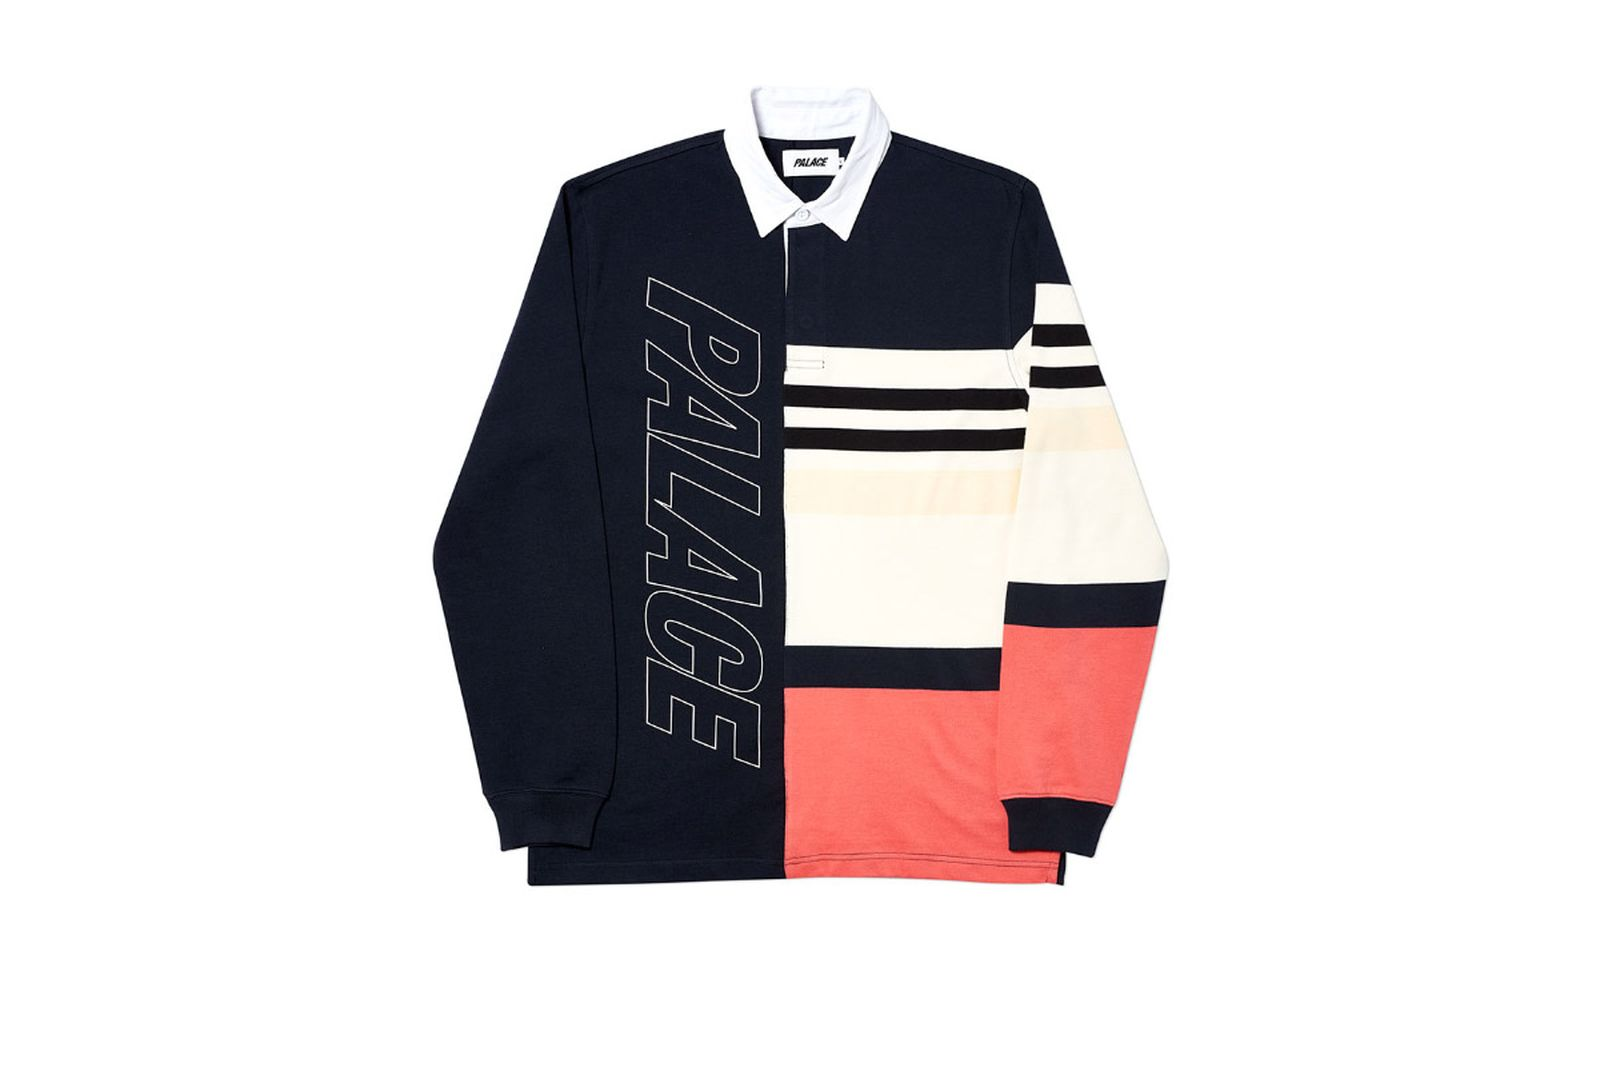 Palace 2019 Autumn Rugby navy front z2086 ADJUSTED fw19